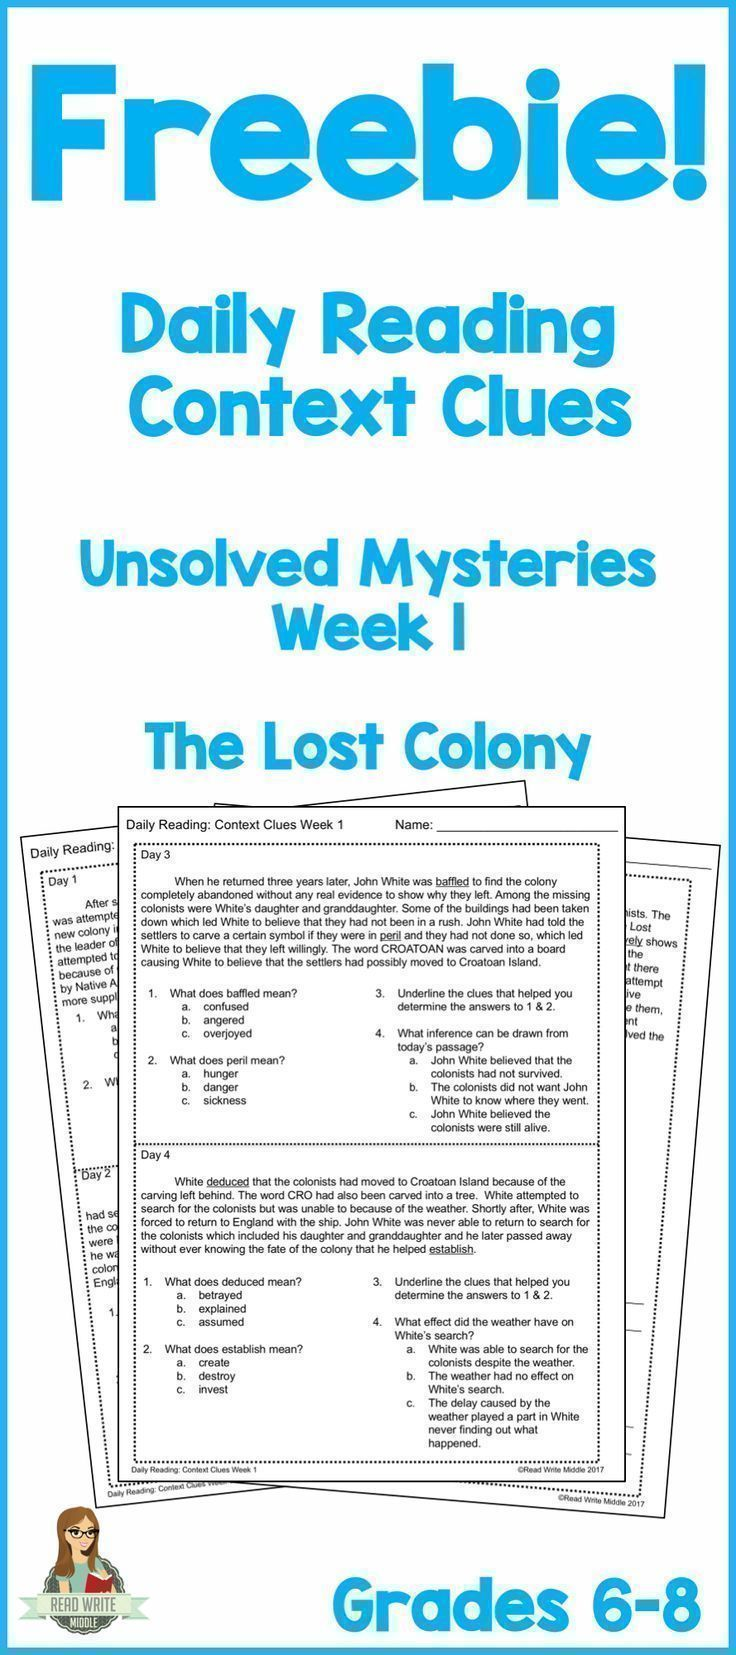 Daily Reading Context Clues Week 1 Context Clues Reading Comprehension Worksheets Reading Passages